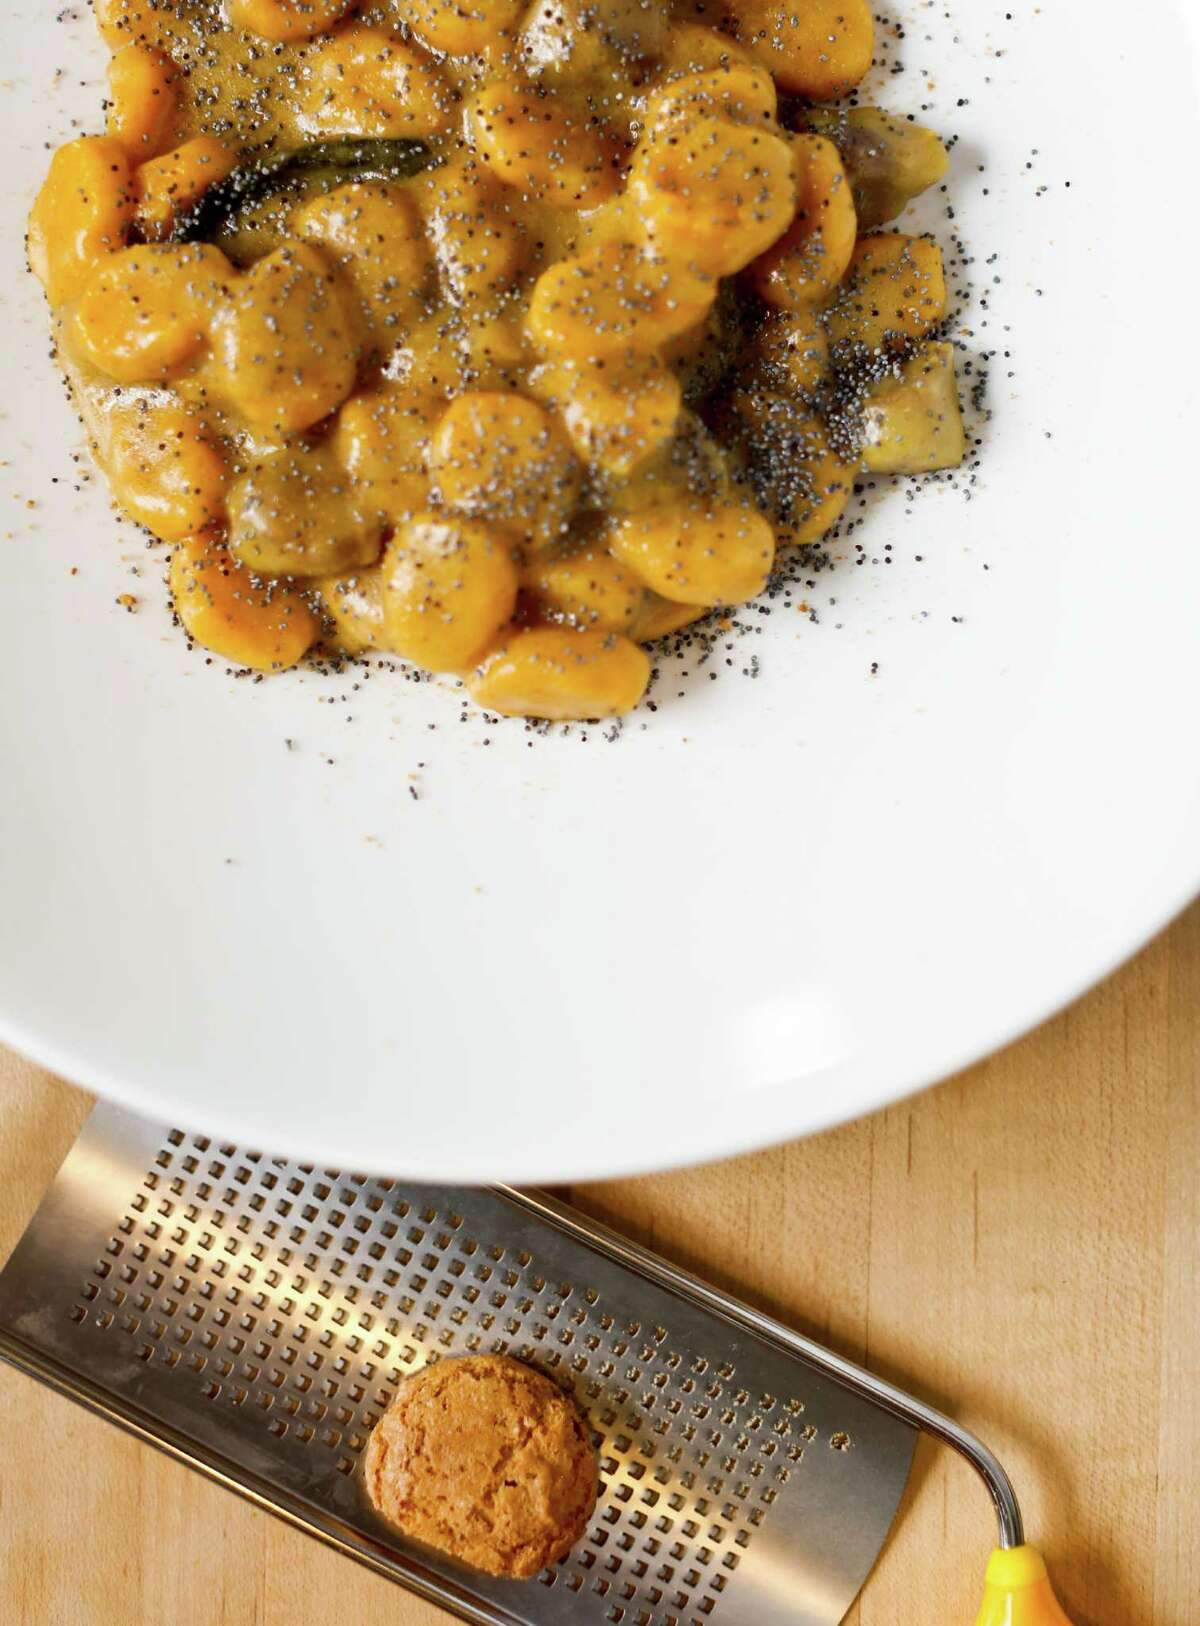 Chef Anthony Strong's Squash Gnocchi with Amaretti Crumbs.